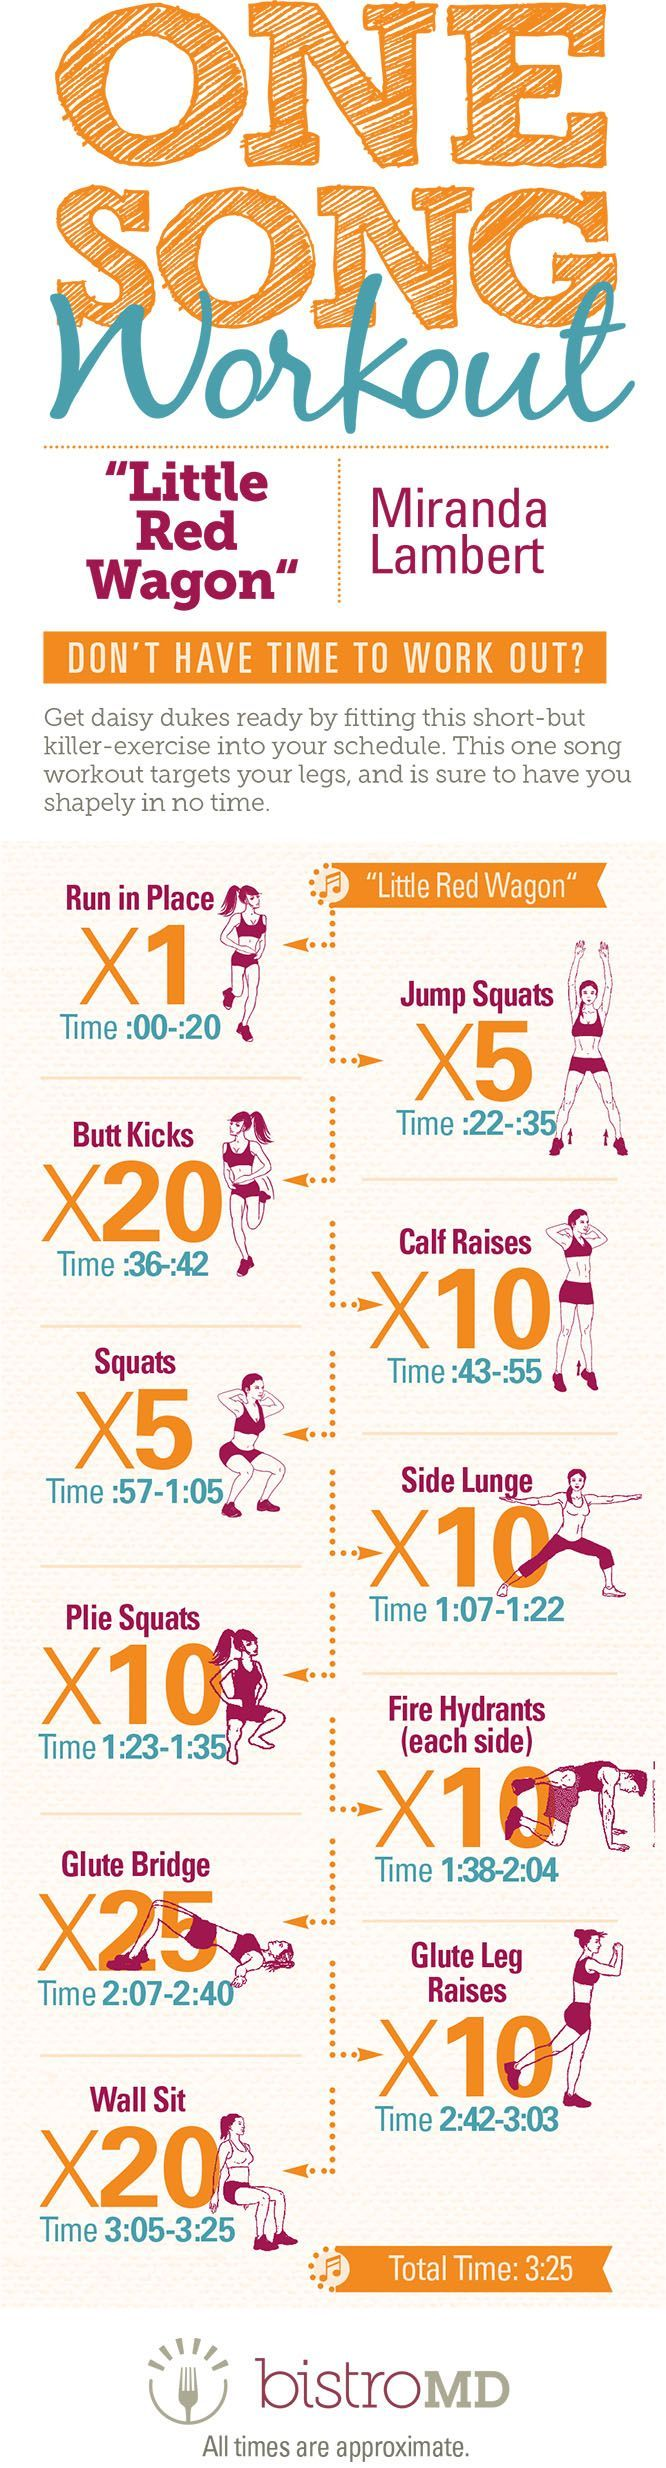 """Don't think you have time to workout? Think again! Get your daisy dukes ready for any occasion with this fun HIIT (high intensity interval training) leg workout to hit song, """"Little Red Wagon"""" by Miranda Lambert. In less than 4 minutes you'll have your leg workout for the day complete! http://www.bistromd.com/infographics/one-song-workout-little-red-wagon-by-miranda-lambert?pp=1 #Fitness #Workout Pin/Via -"""